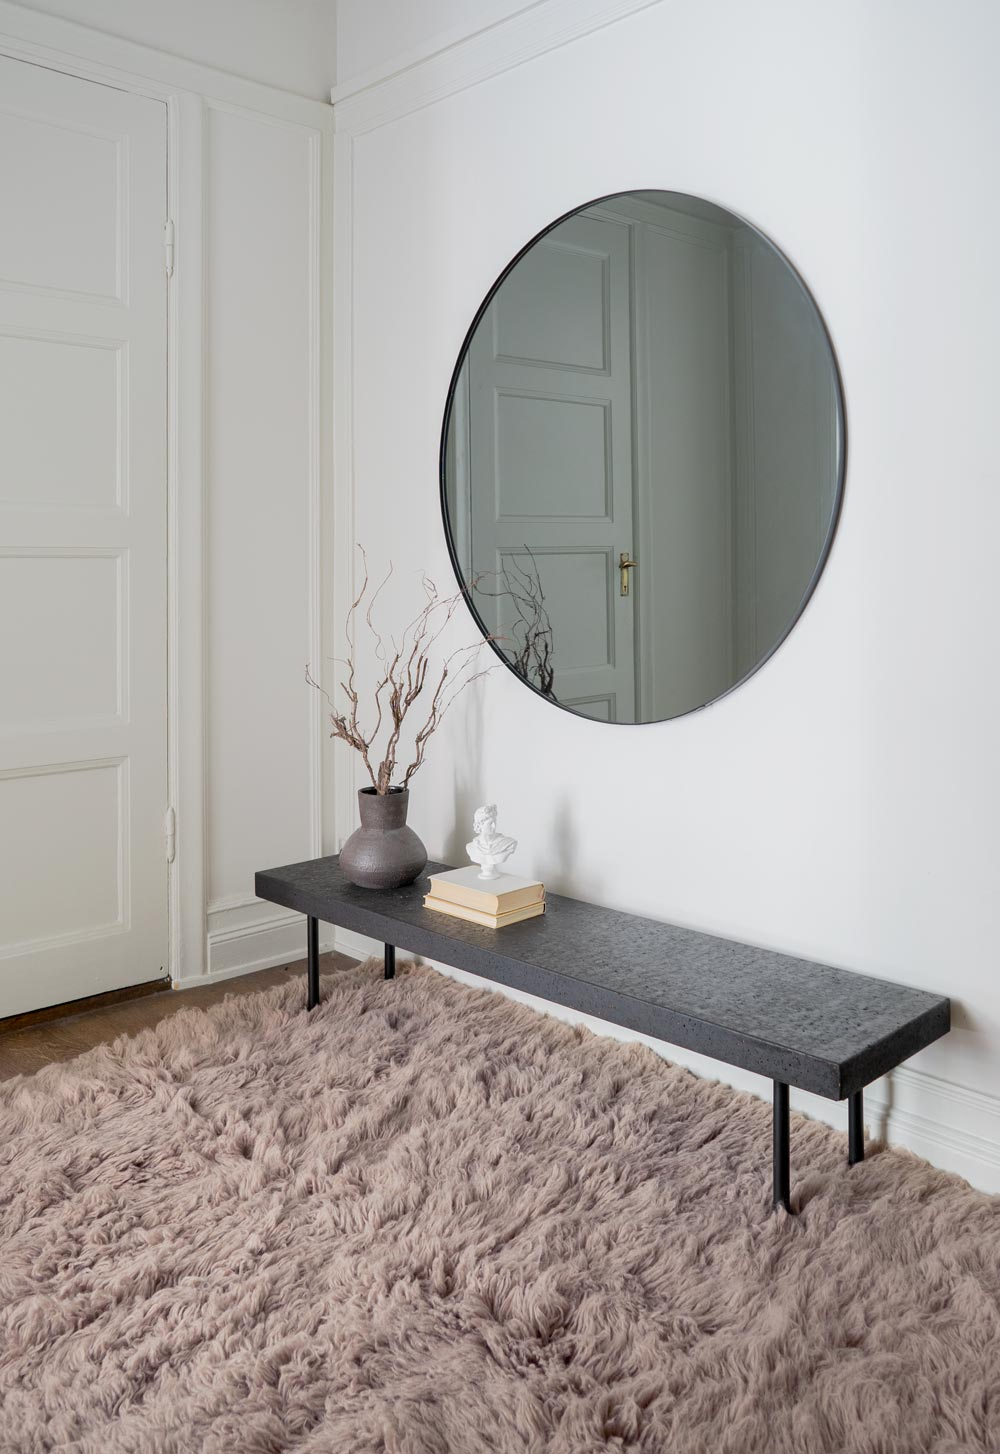 Shaggy rug in charcoal brown with mirror and table